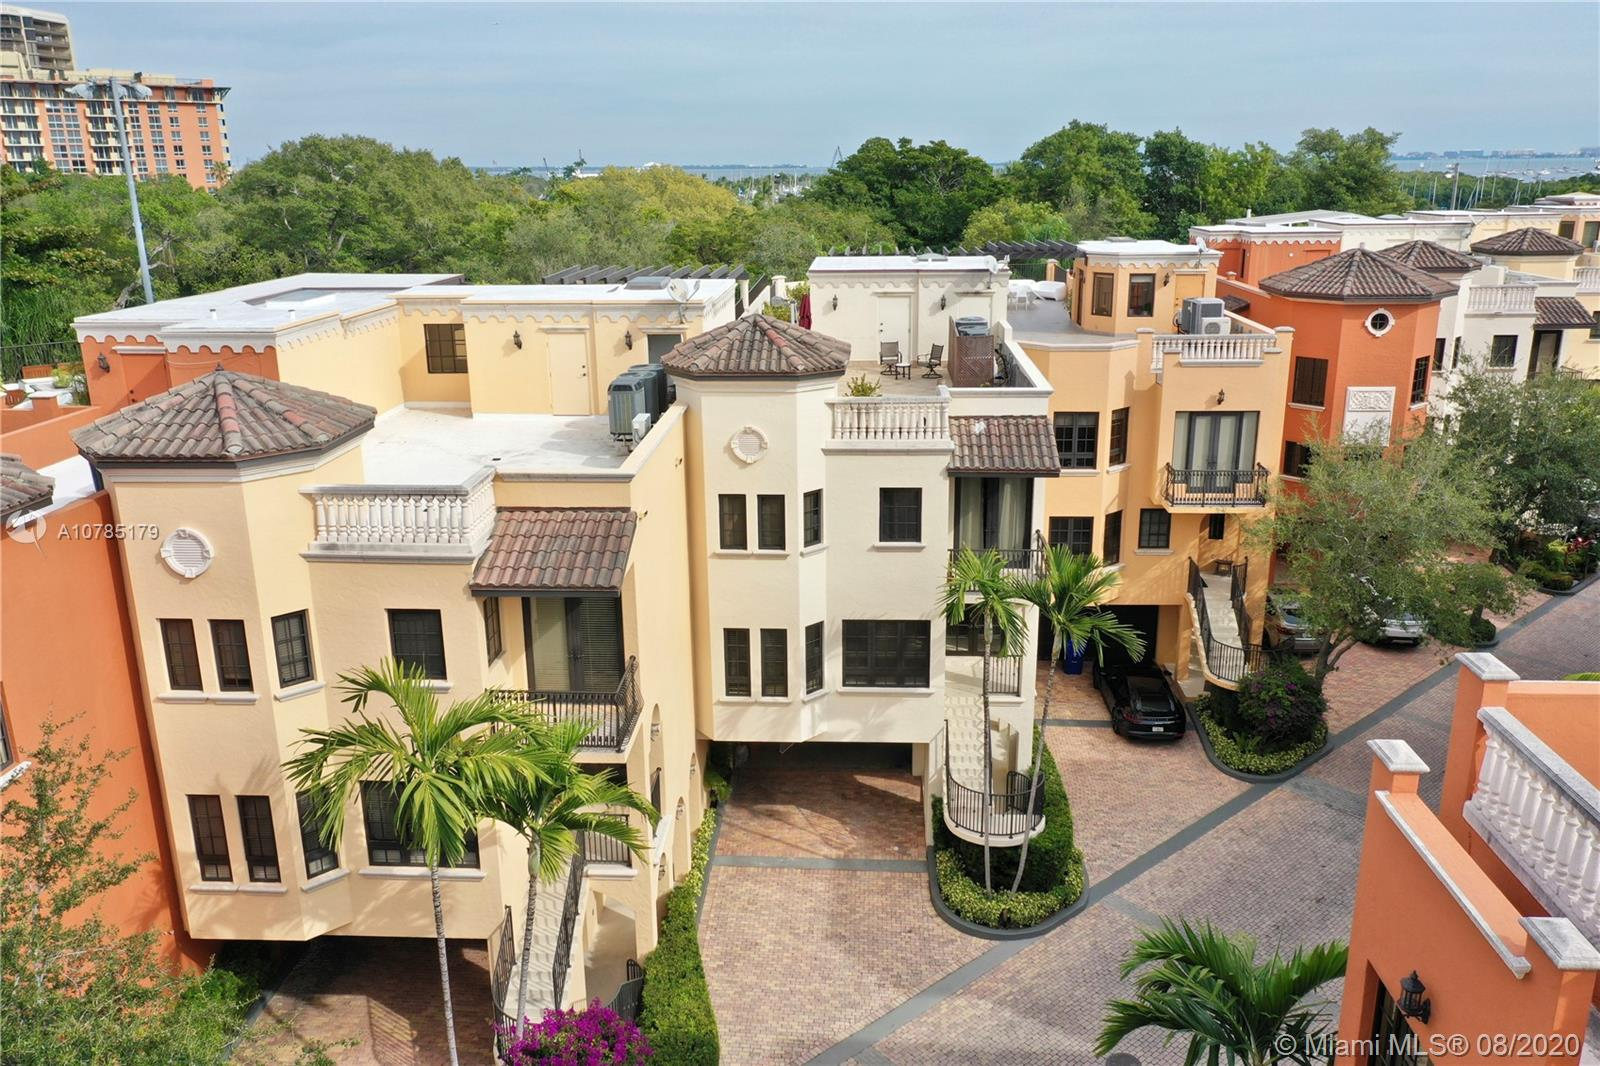 Rare opportunity in Cloisters on the Bay located in the heart of Coconut Grove and within walking distance to local stores, restaurants, and private schools. This oversized  5,650 sq ft unit is move in ready offering 4 bedrooms with en-suite bathrooms, living room, family room, as well as a full den, home office, wet-bar, laundry / utility room, and built closets. This home has 2 entrances, a private elevator, 4-car driveway and 2-car garage equipped with 220 power for electric vehicles. There is also plenty of room for storage throughout. The unit also features an expansive outdoor rooftop area that includes a hot tub and lots of space for outdoor dining and relaxing. The neighborhood itself features a clay tennis court, heated swimming pool, clubhouse, and 24 hour security. Easy to Show!